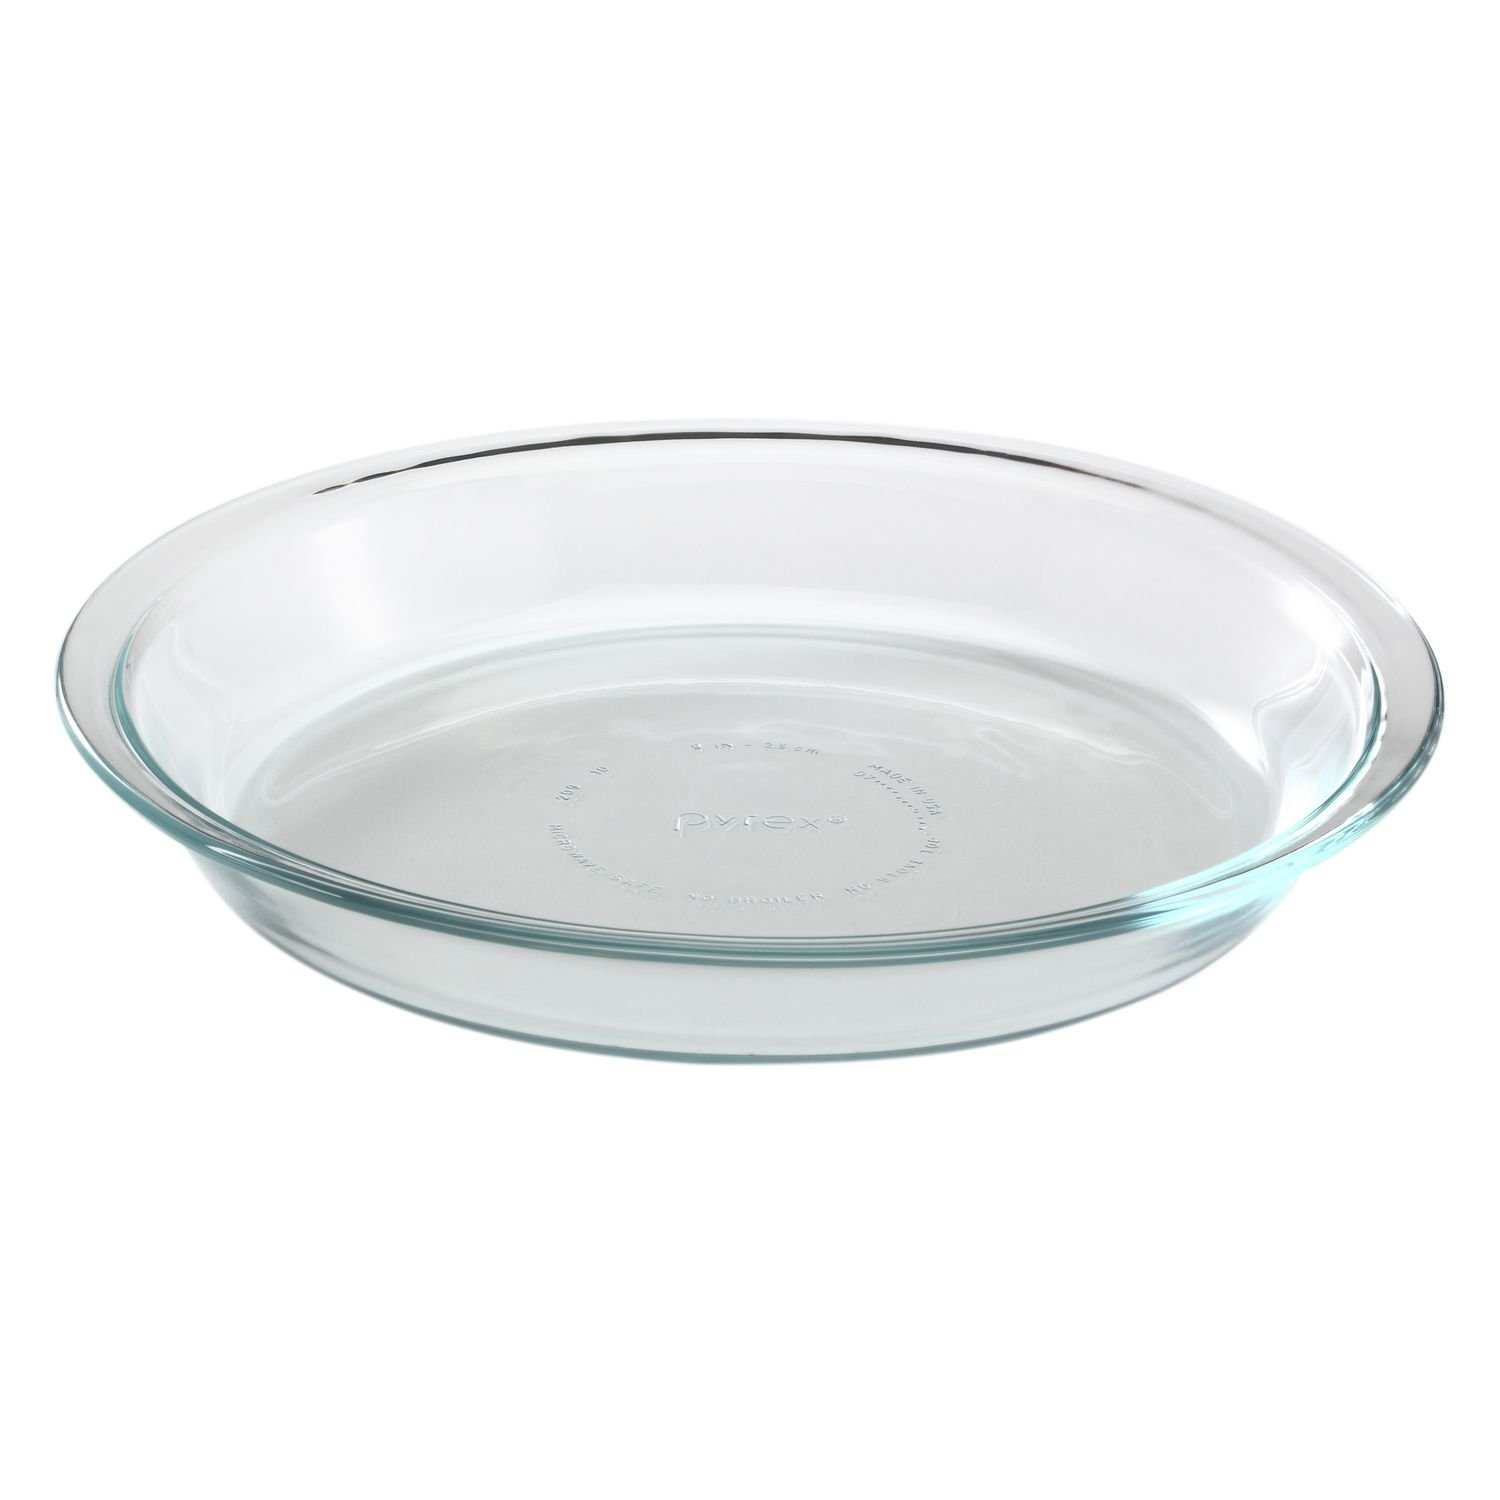 Pyrex Glass Bakeware Pie Plate 9'' x 1.2'' (Pack of 3) by World Kitchen